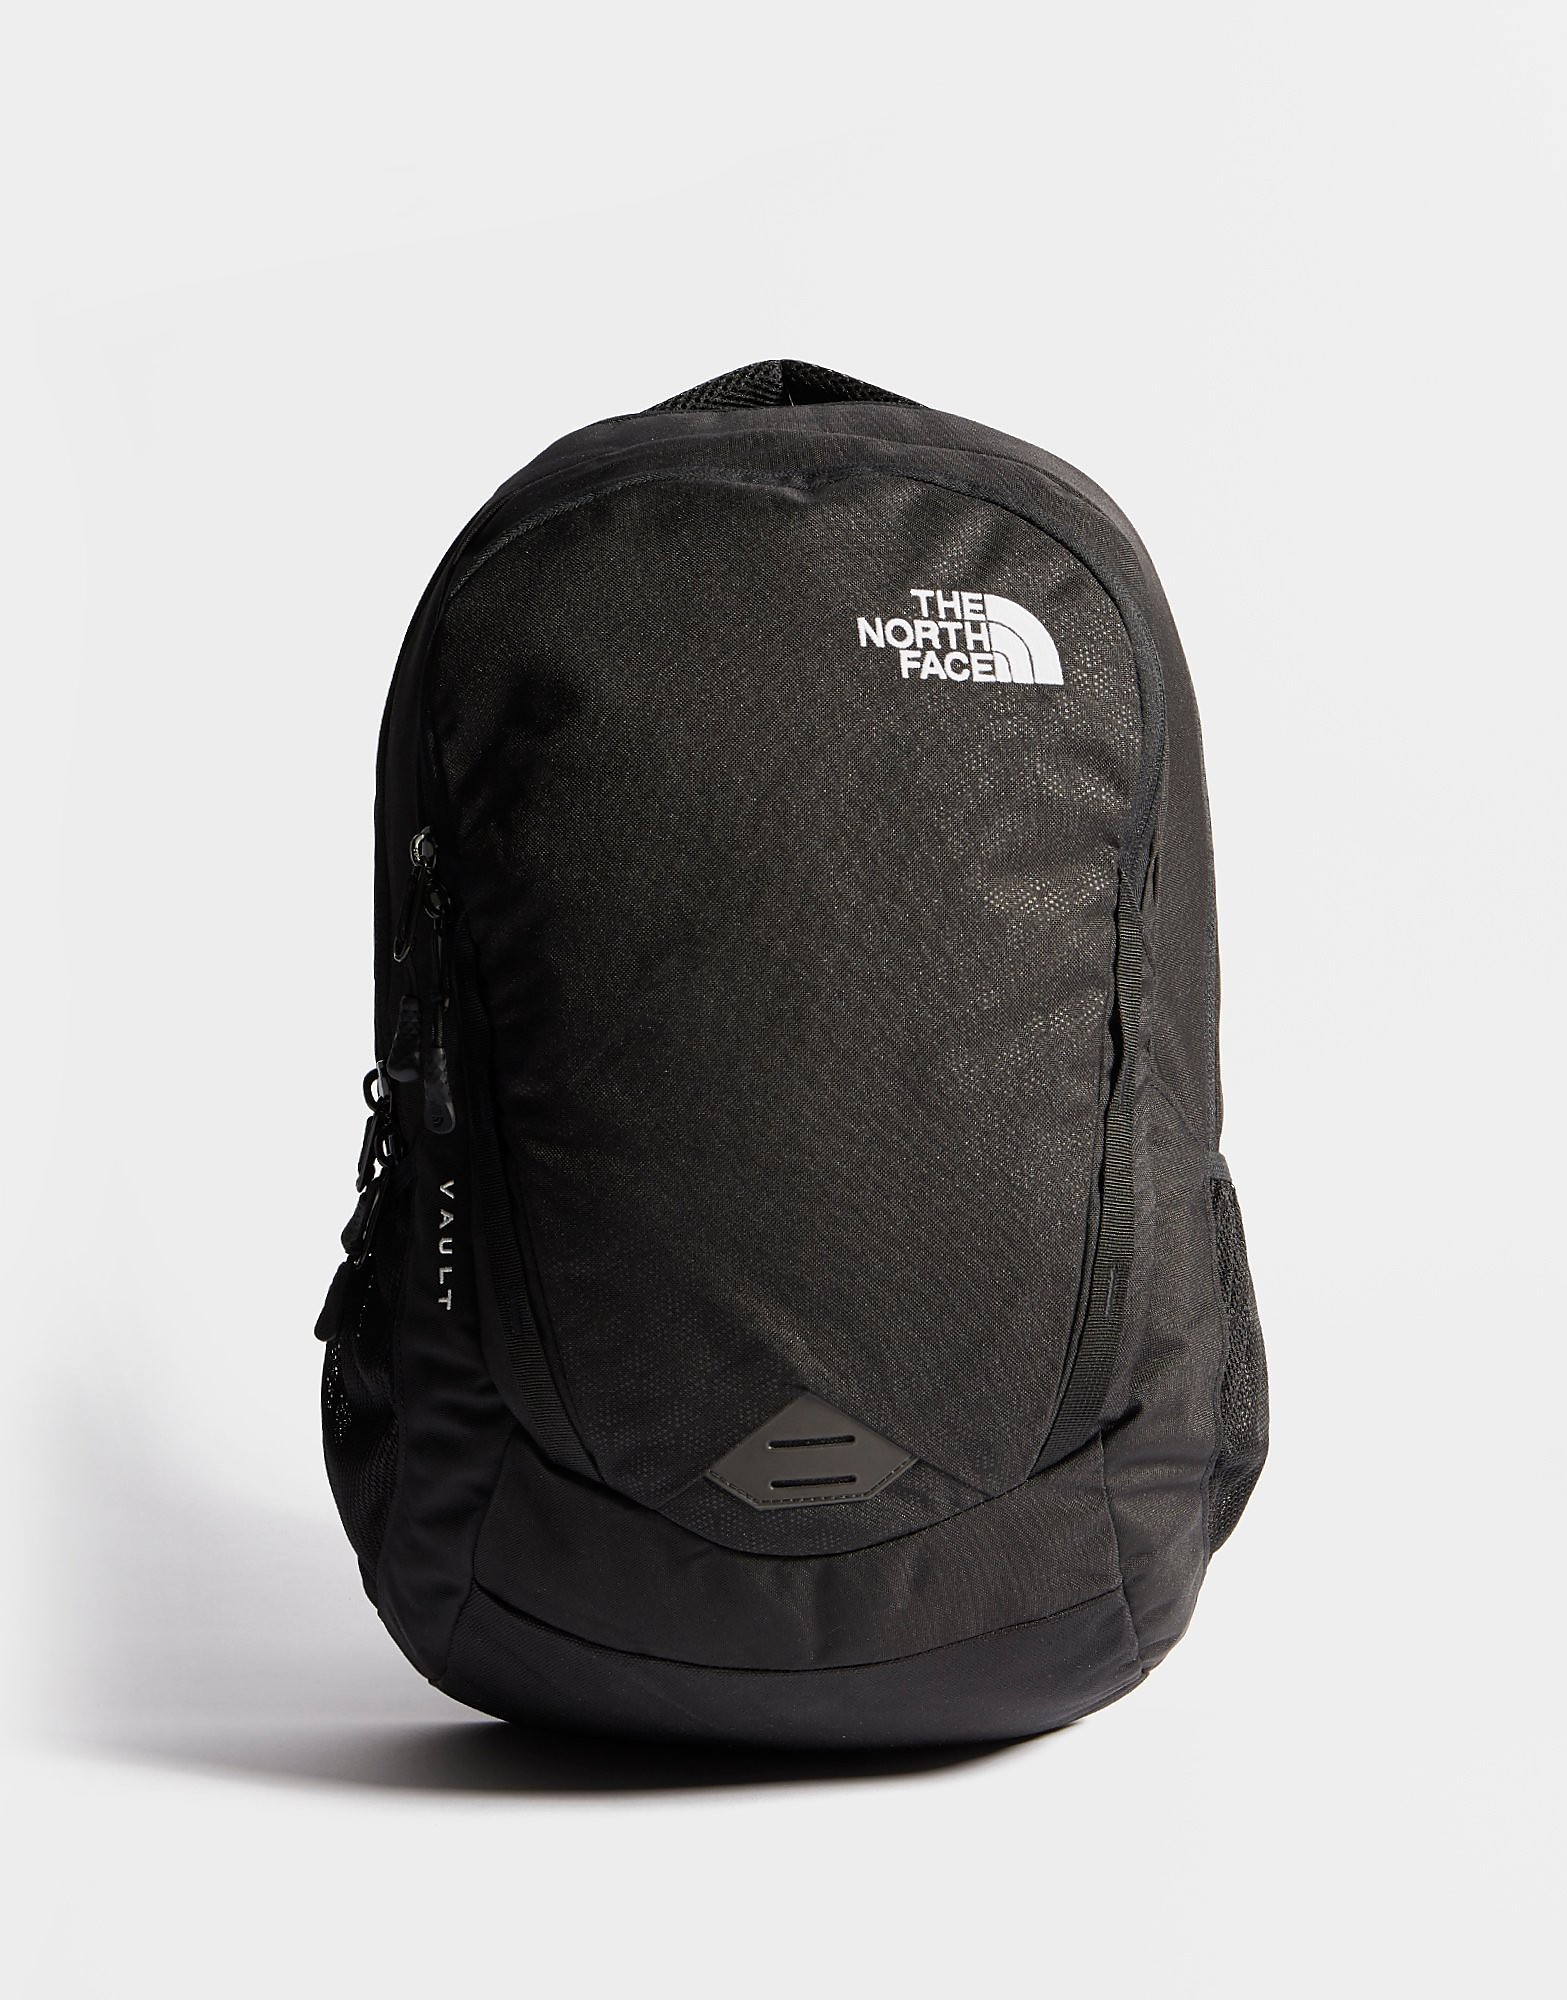 The North Face Sac à dos Vault